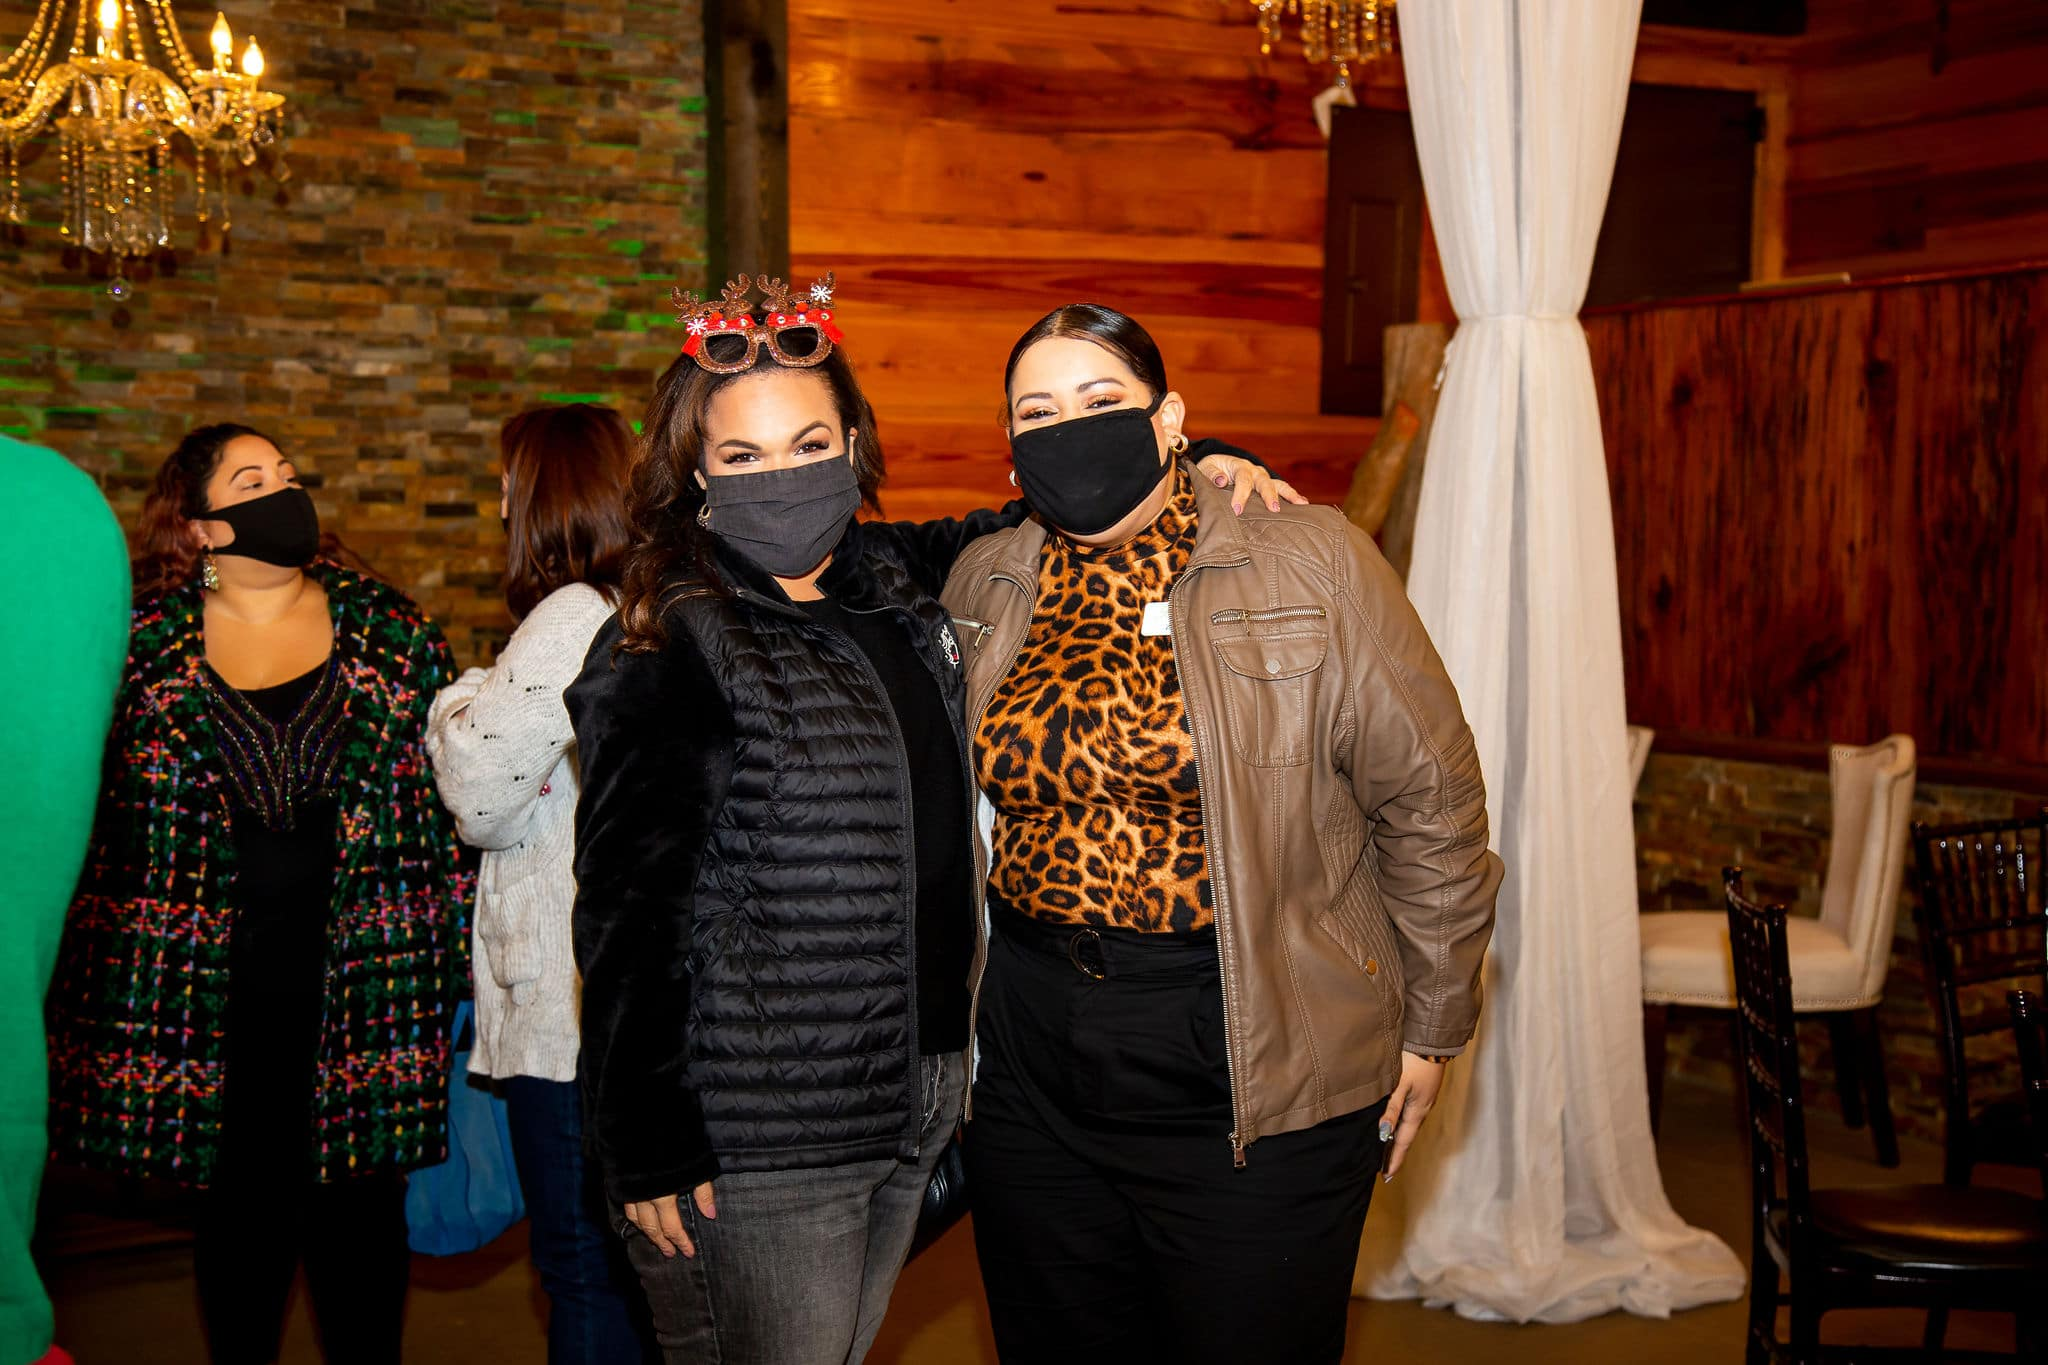 woman wearing black jacket and festive holiday sunglasses on head stands next to woman with leopard print shirt and brown jacket while at holiday party